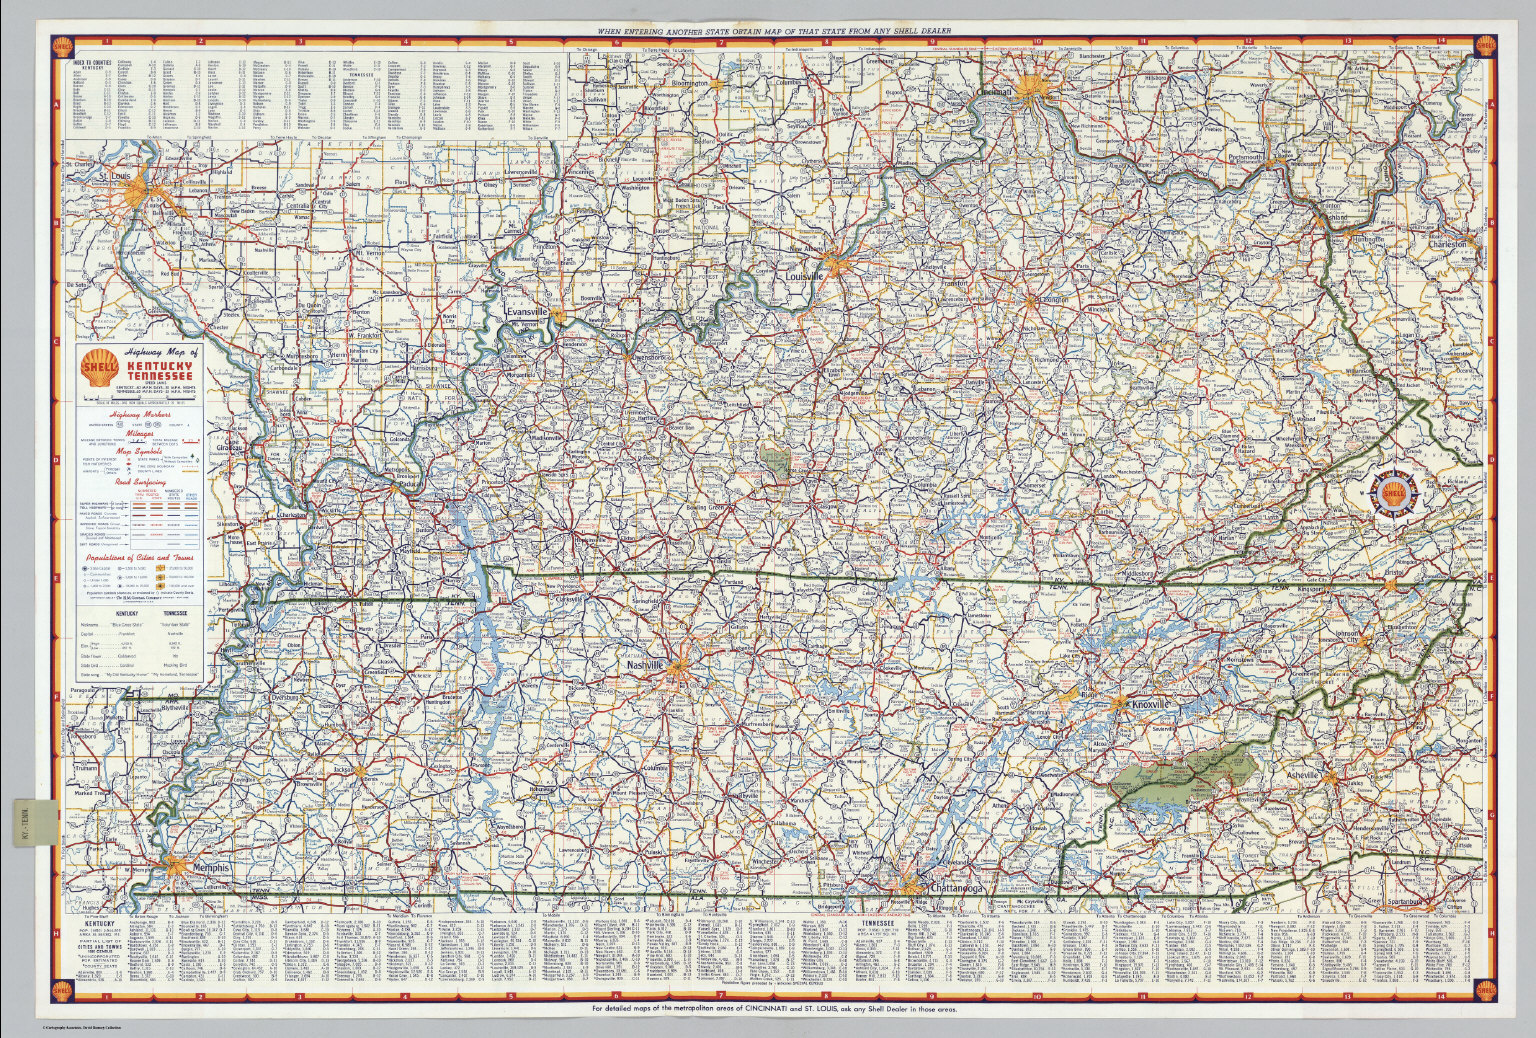 State Map Of Kentucky With Cities.31 Model Map Of Kentucky And Tennessee With Cities Bnhspine Com